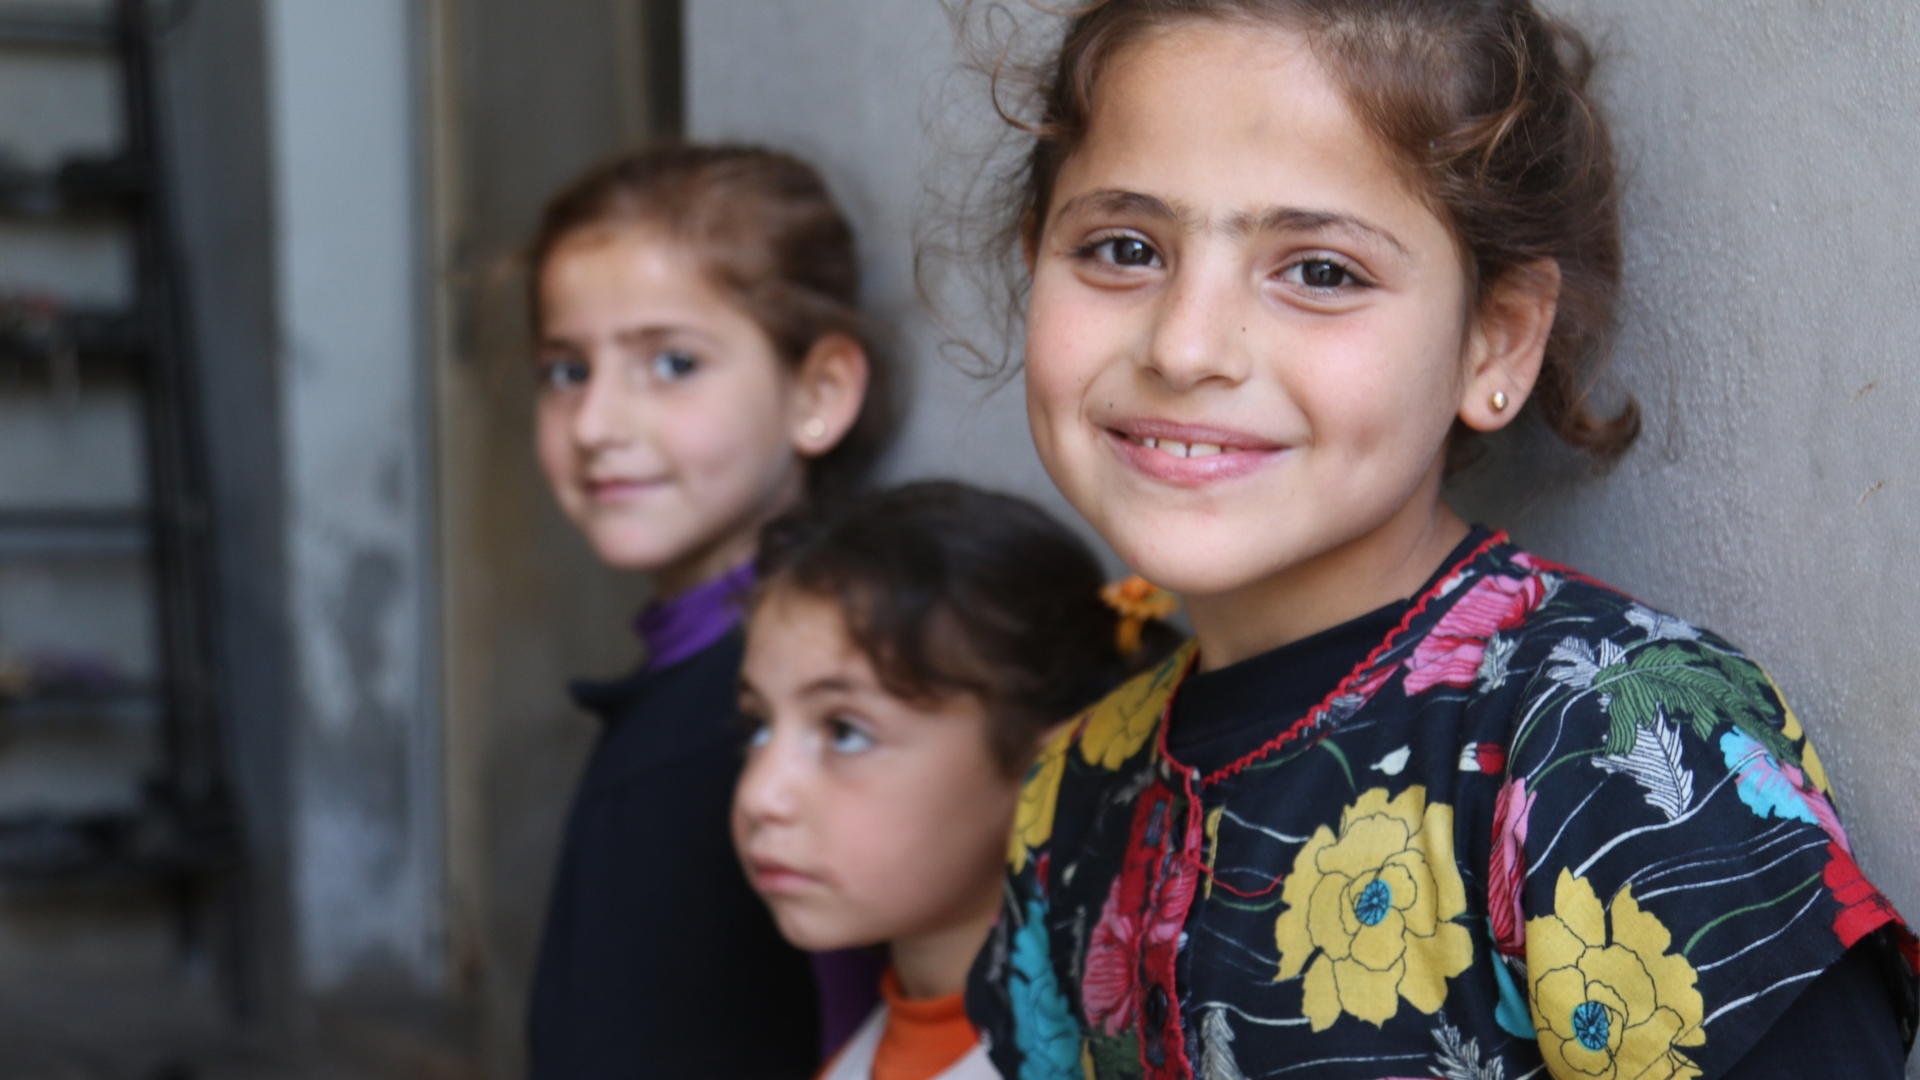 Young girls inside Syria